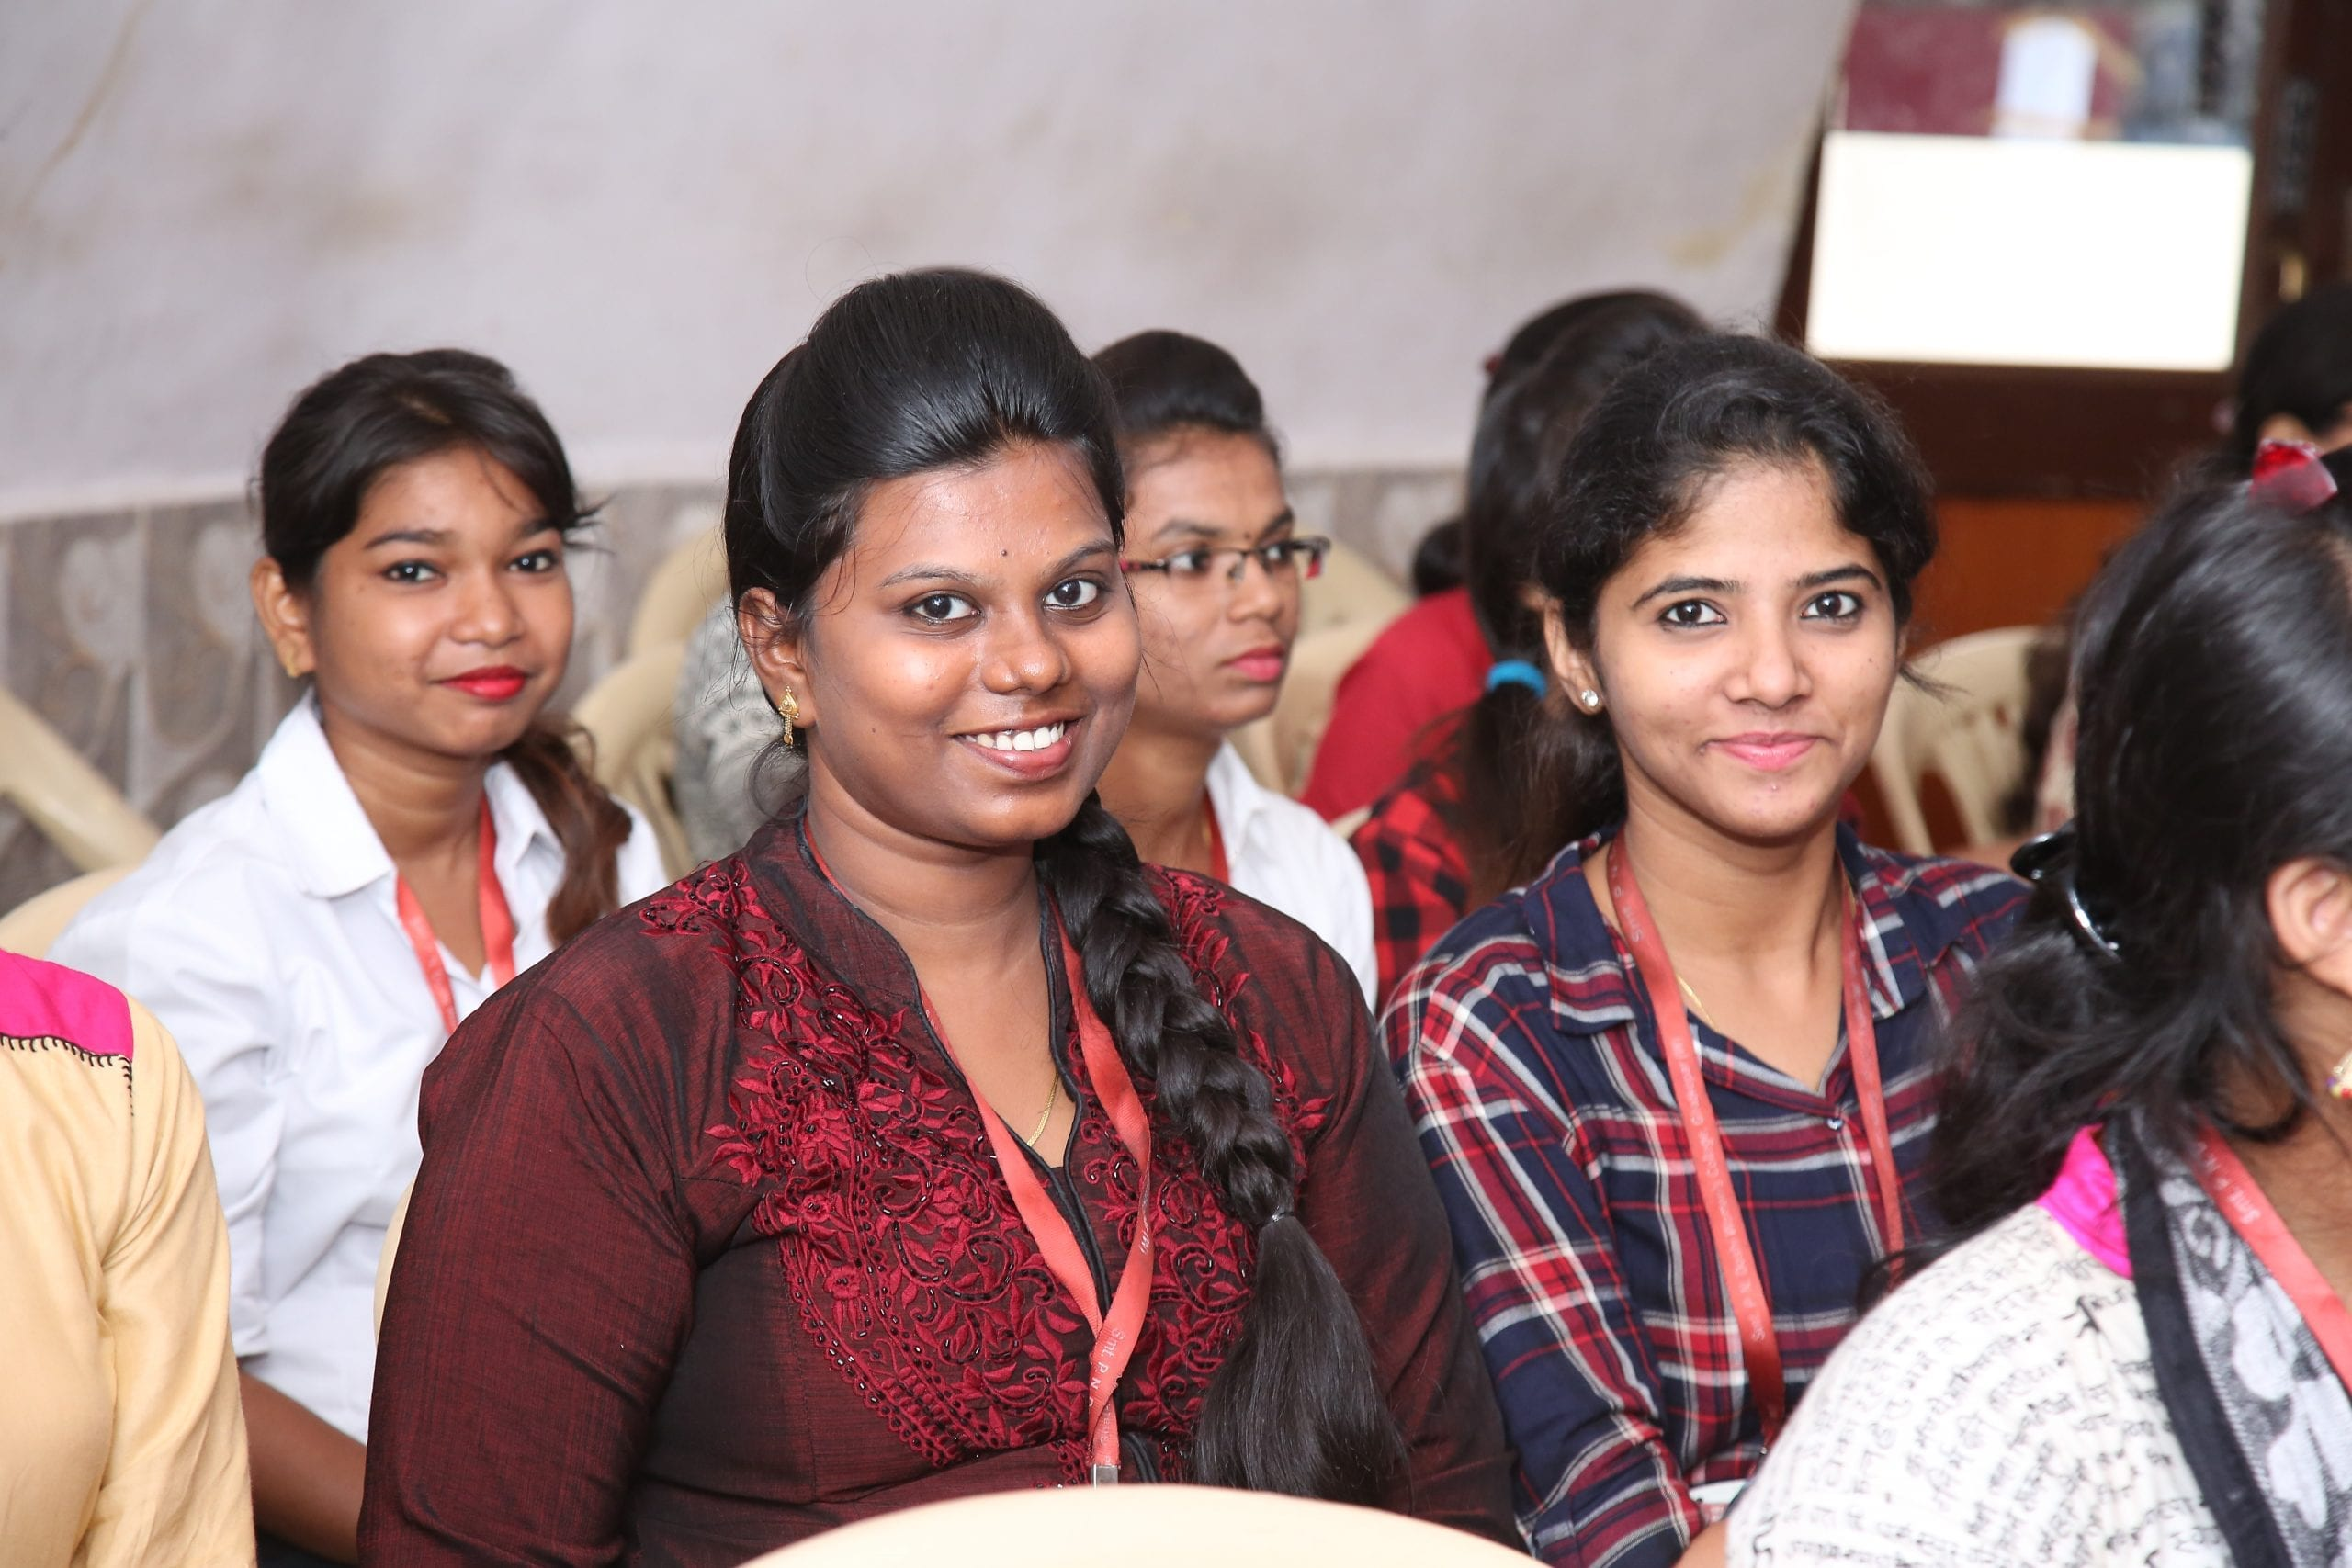 A group of young women learn about formal work opportunities at a workshop in India